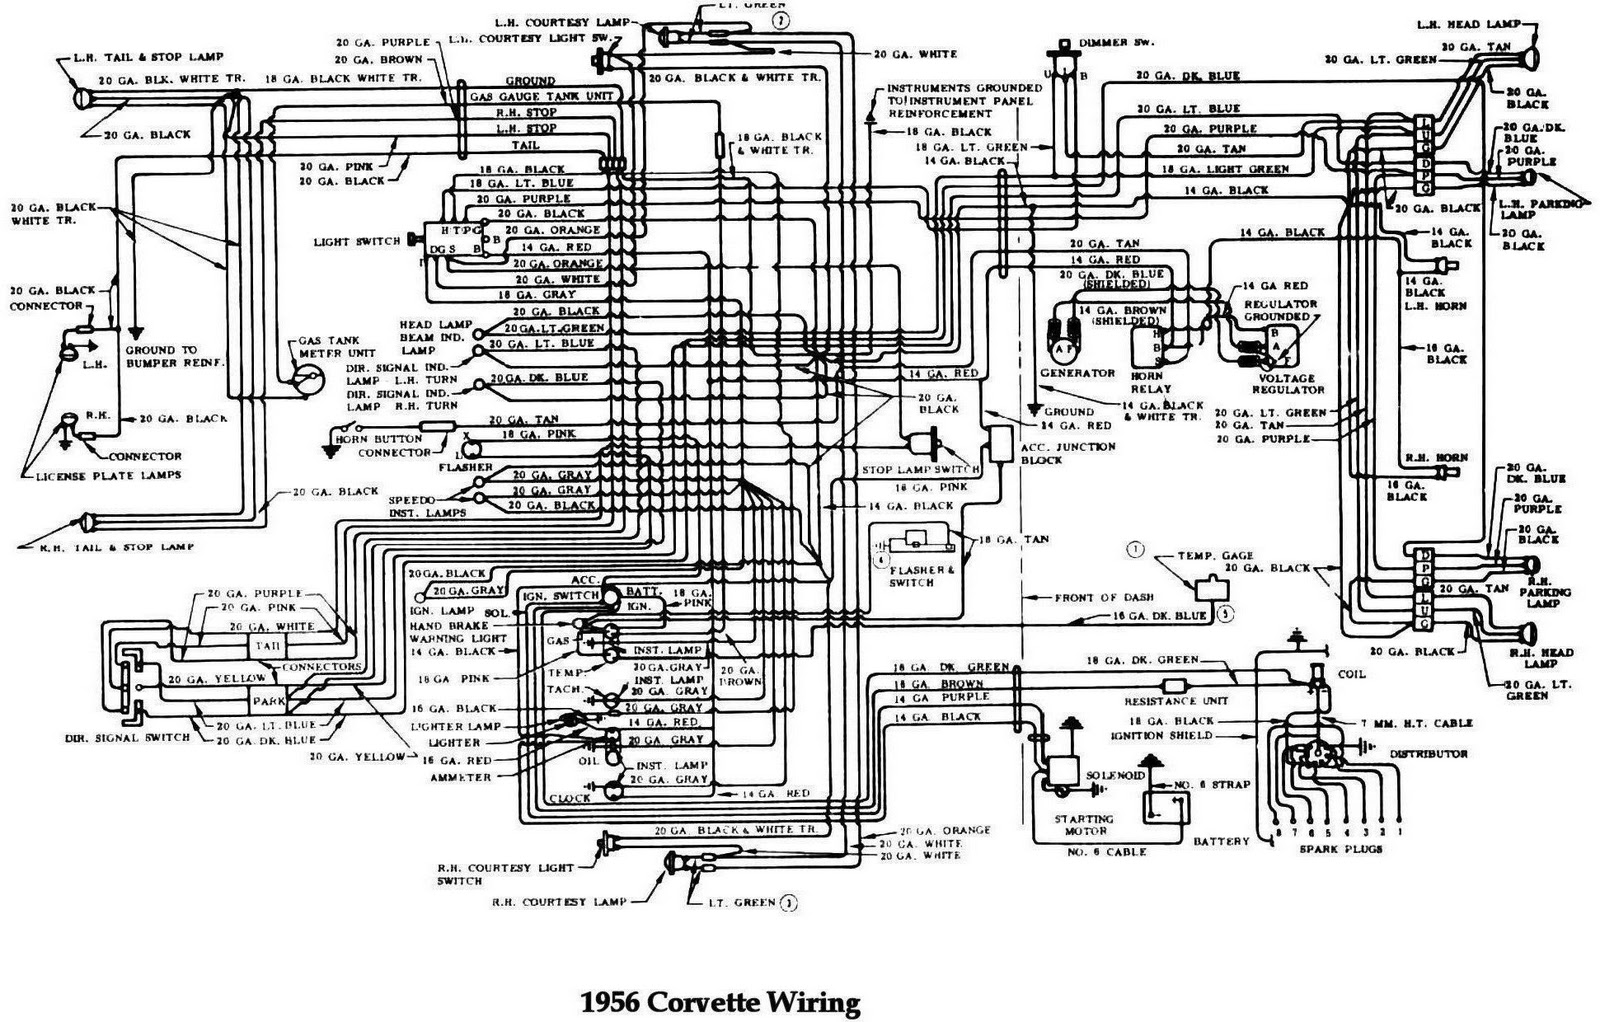 1956 chevrolet corvette wiring diagram | all about wiring ... 1956 chevy horn wiring 1956 chevy radio wiring diagram